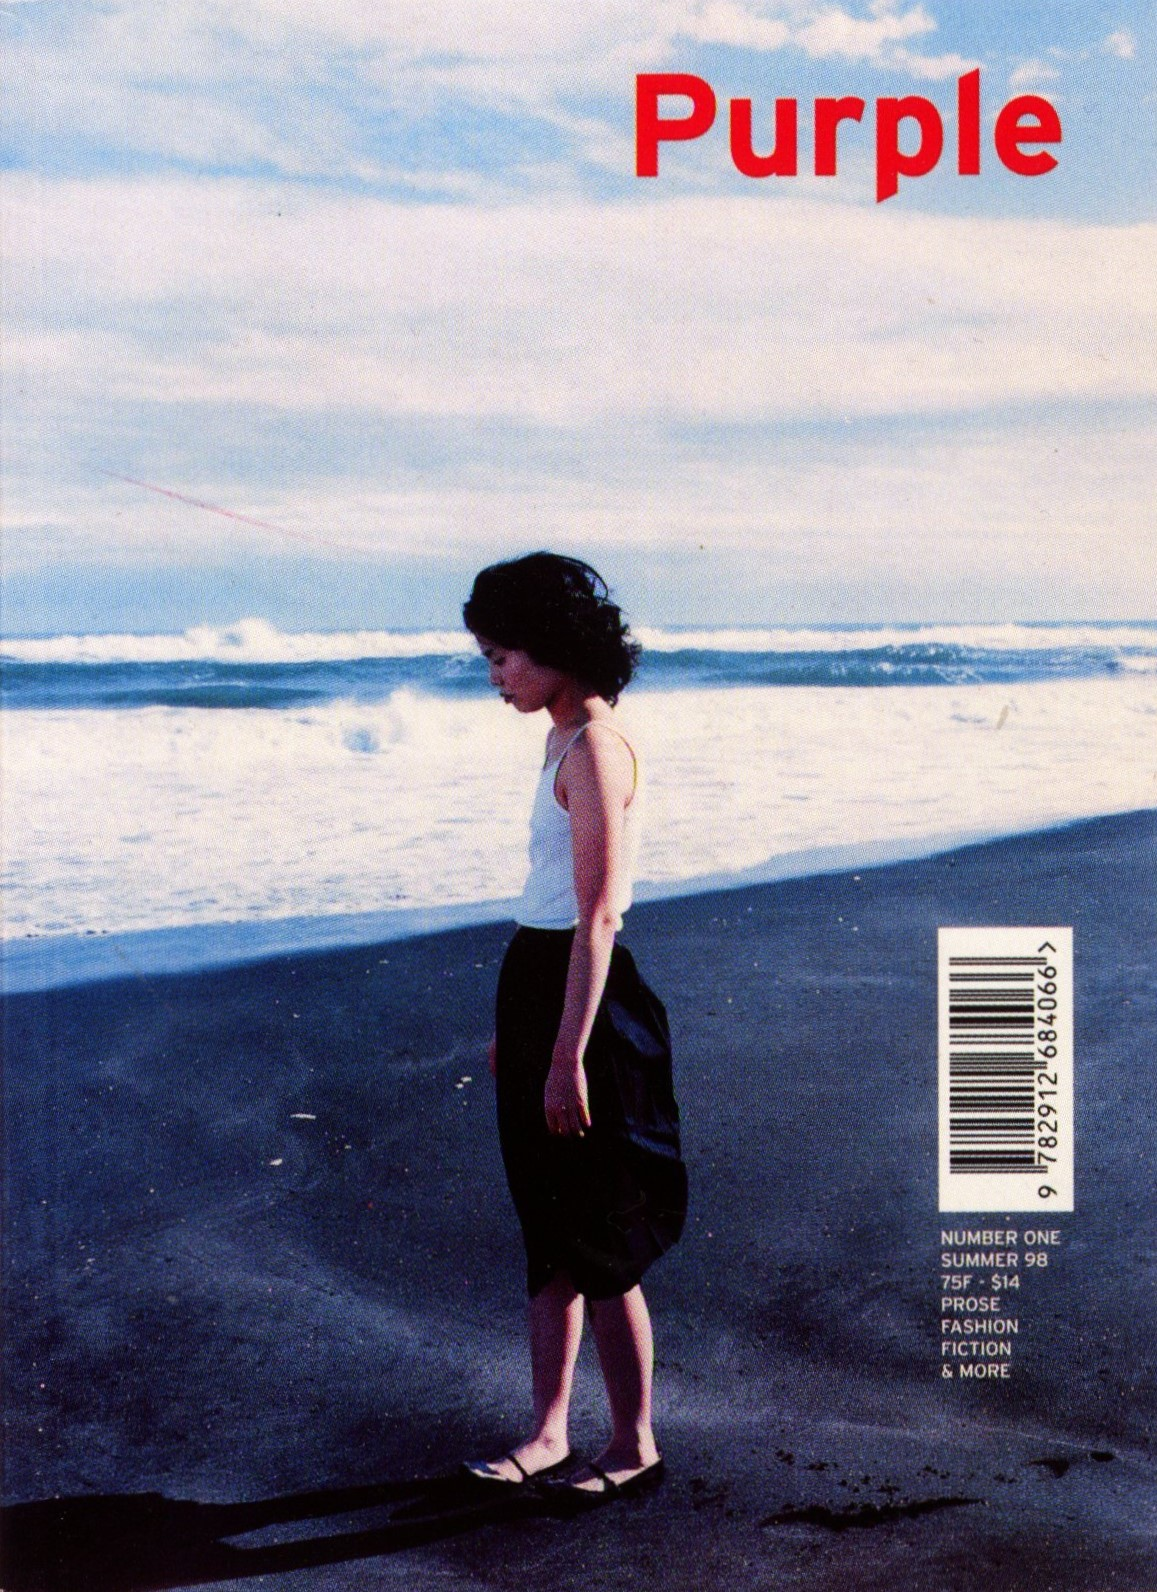 purple number one photography takashi noguchi summer 98